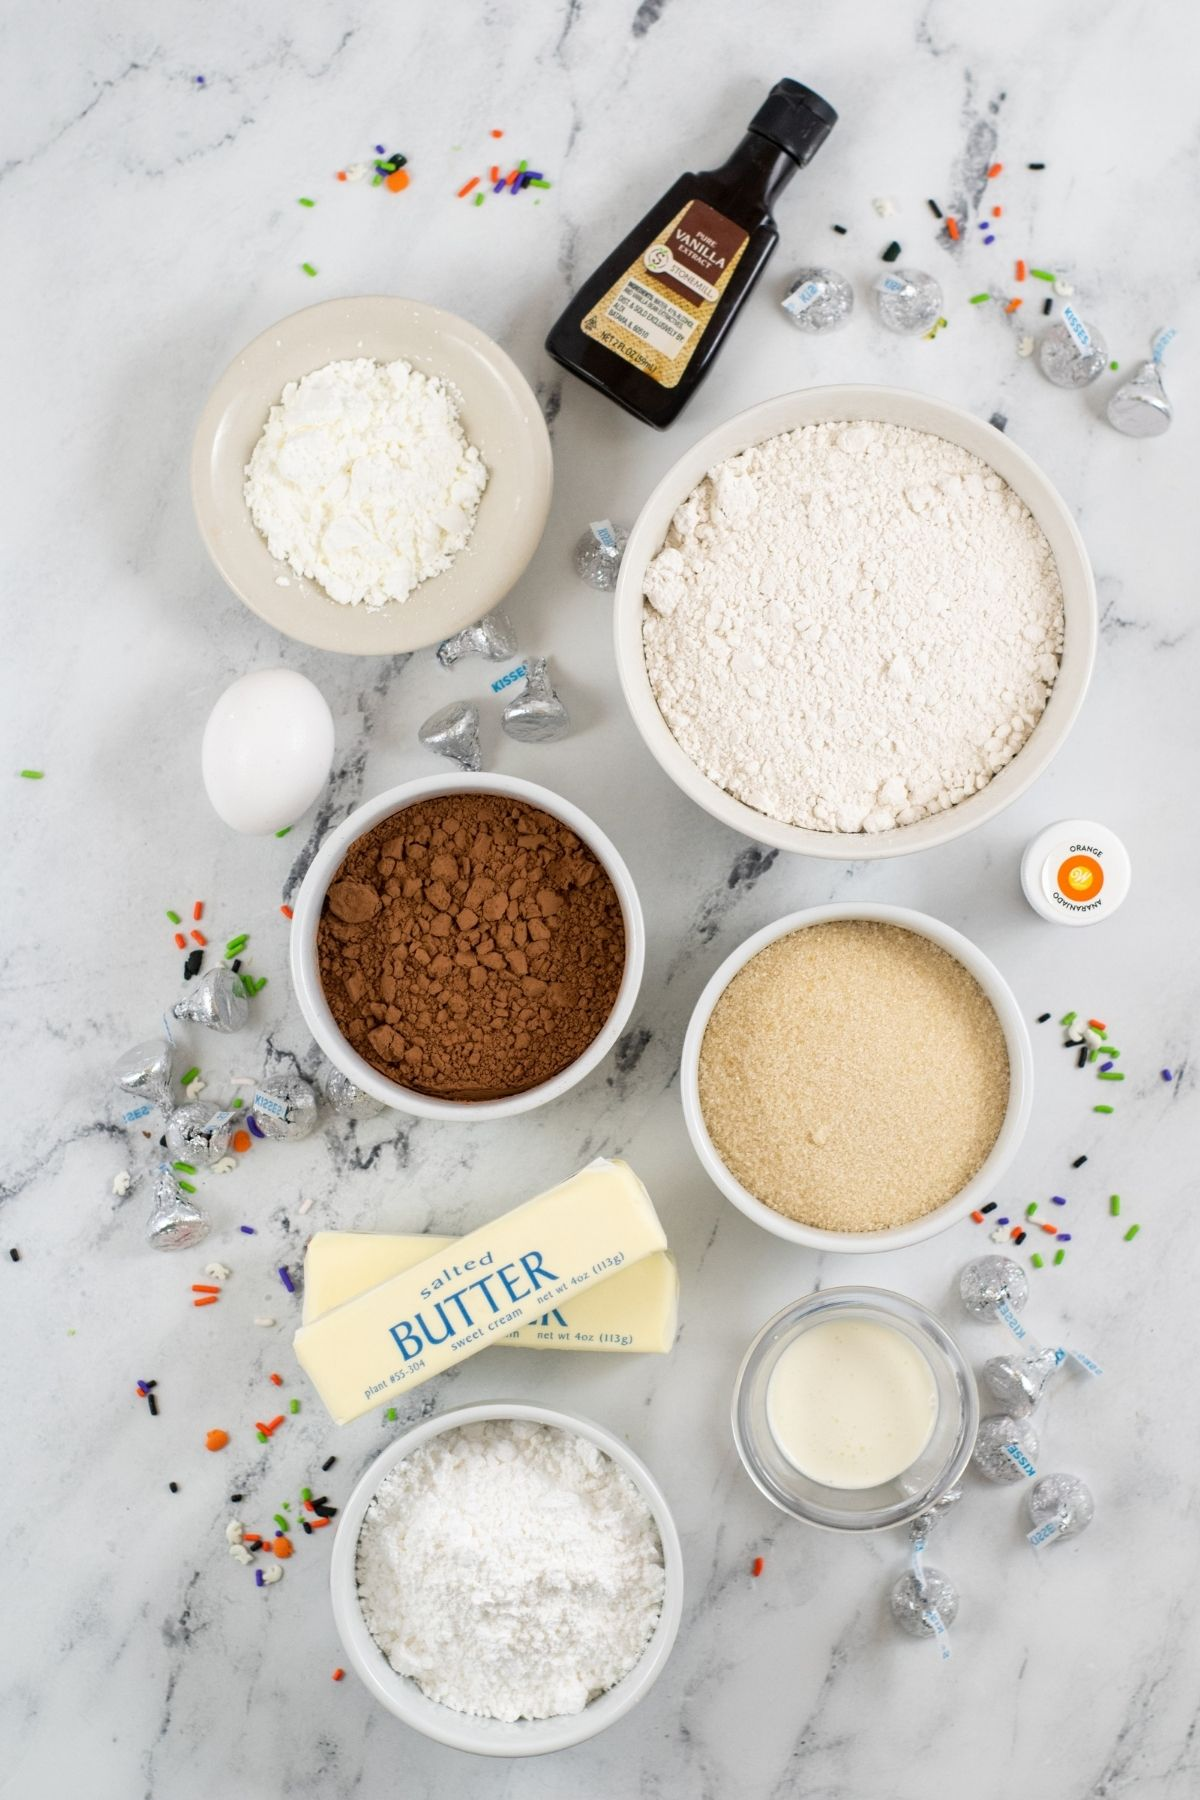 ingredients on white counter: vanilla, Hershey's kisses, egg, orange gel food coloring, flour, corn starch, cocoa powder, cream, and butter